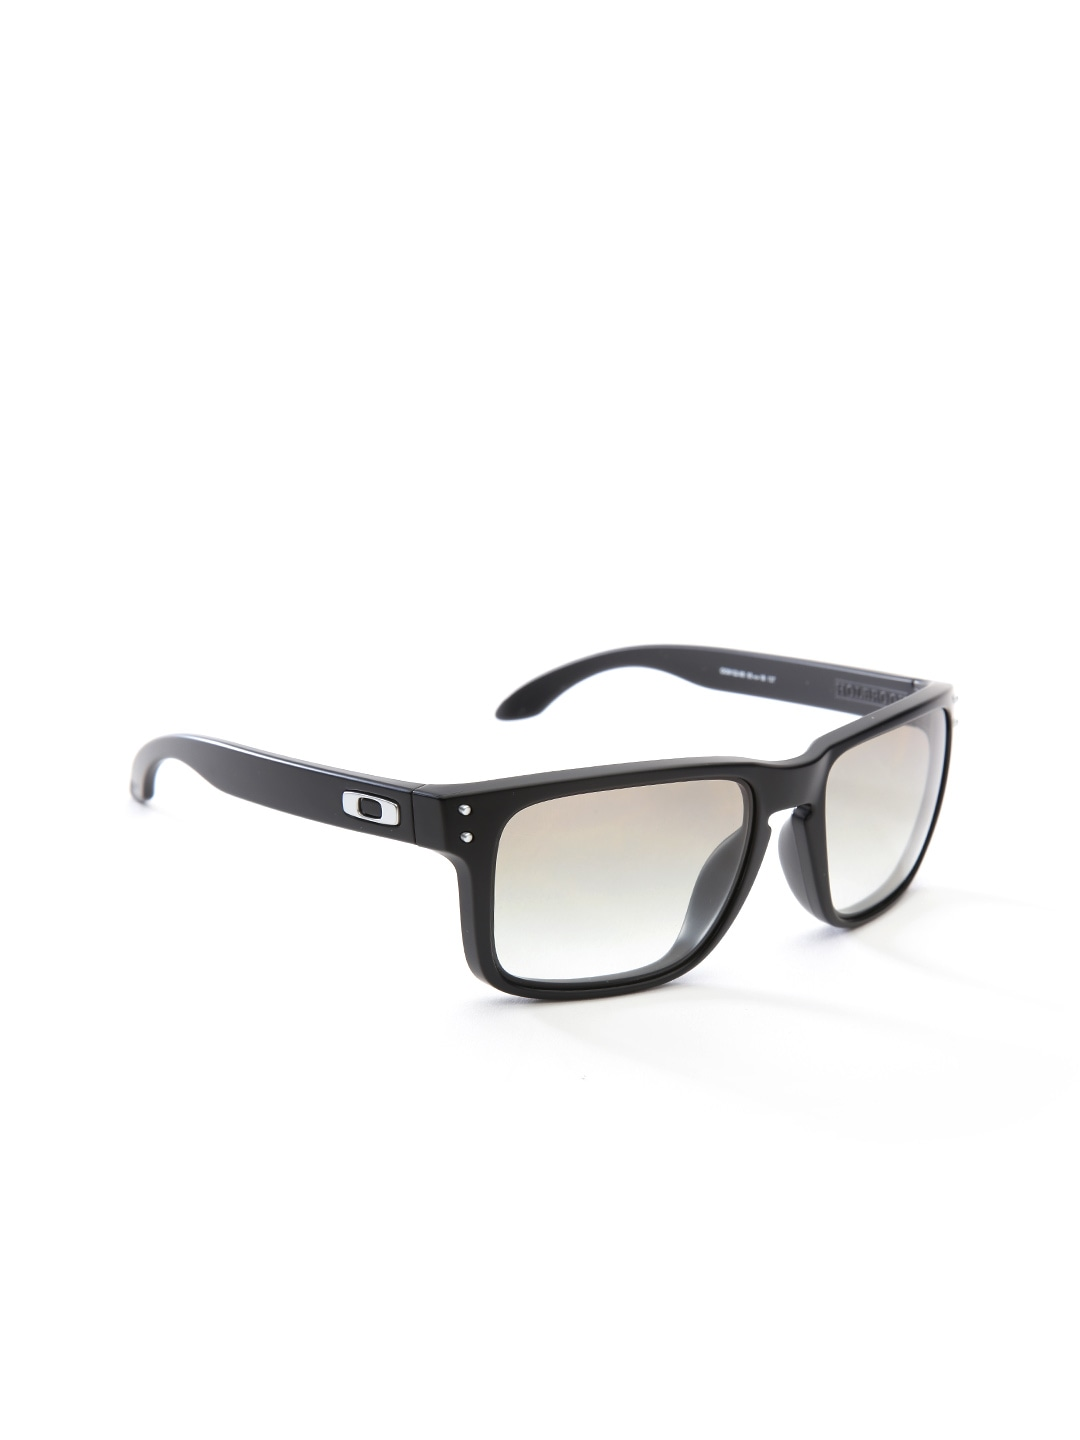 oakley sunglasses buy  oakley men rectangular sunglasses 0oo910291029555